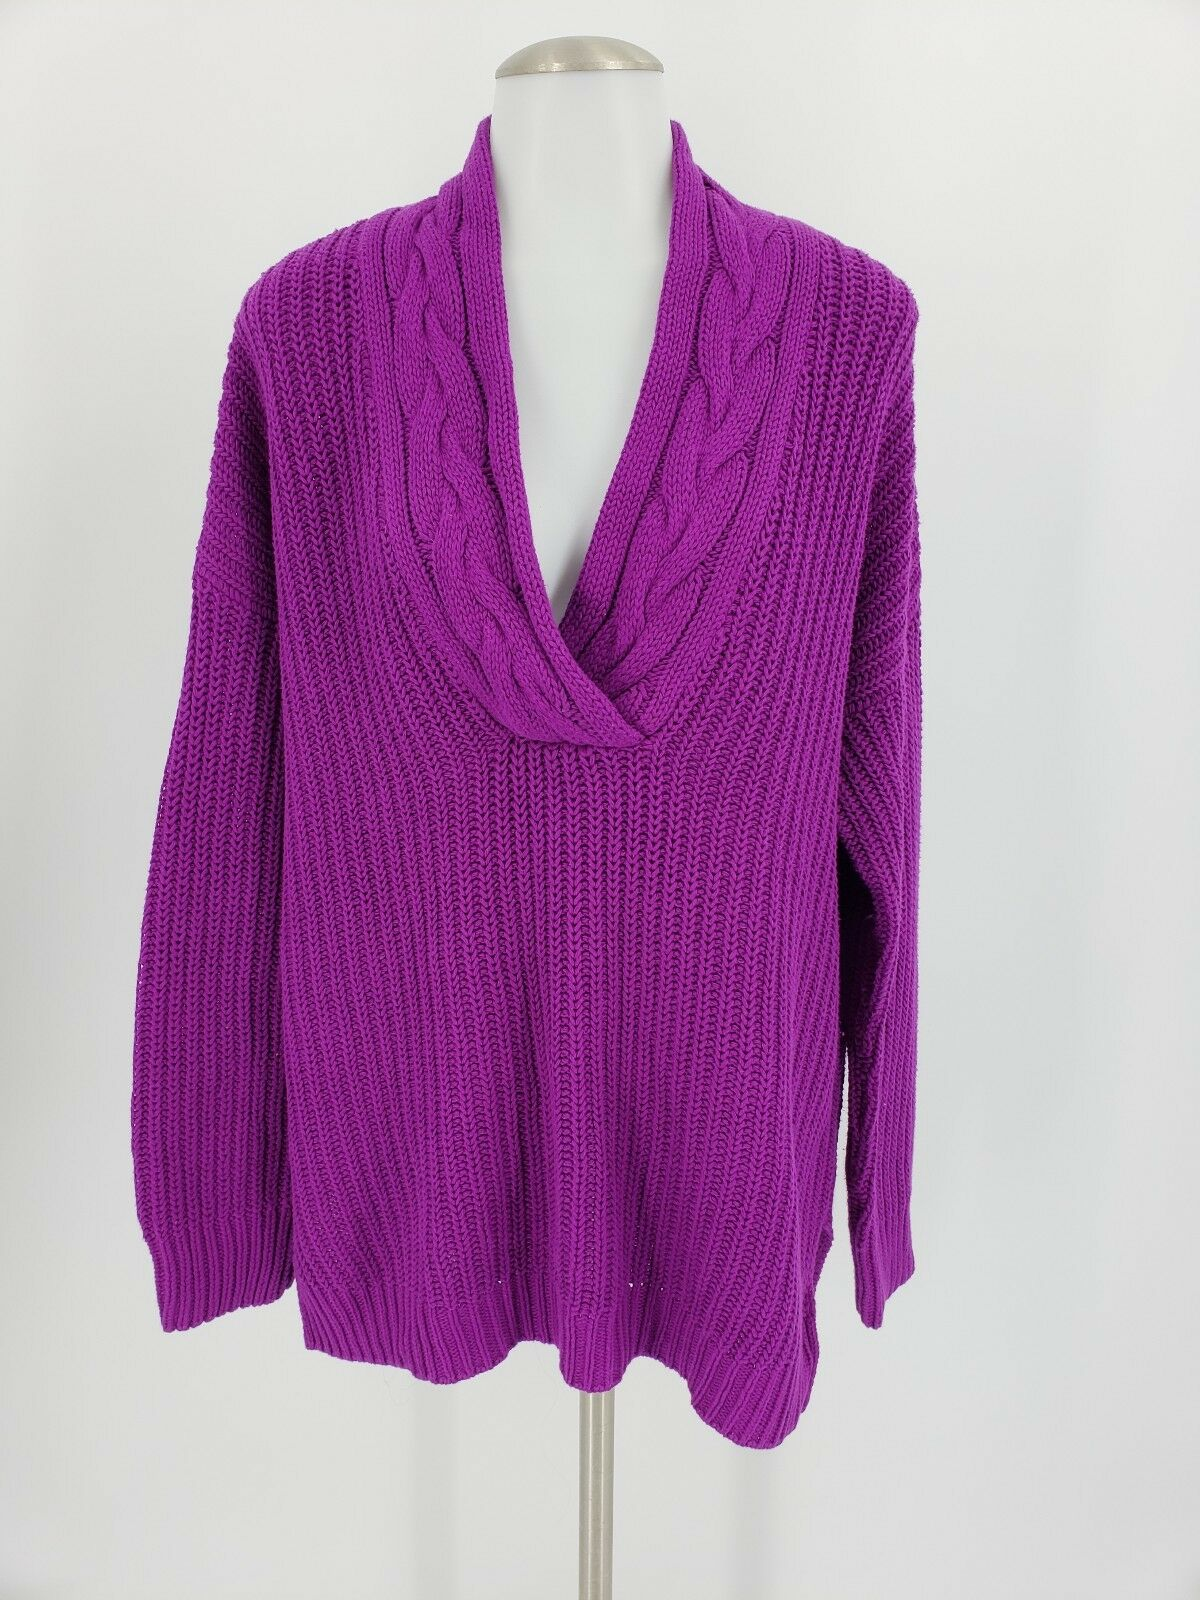 RALPH LAUREN Women's L Shawl Collar Cable Knit Long Sleeve Tunic Sweater Plum